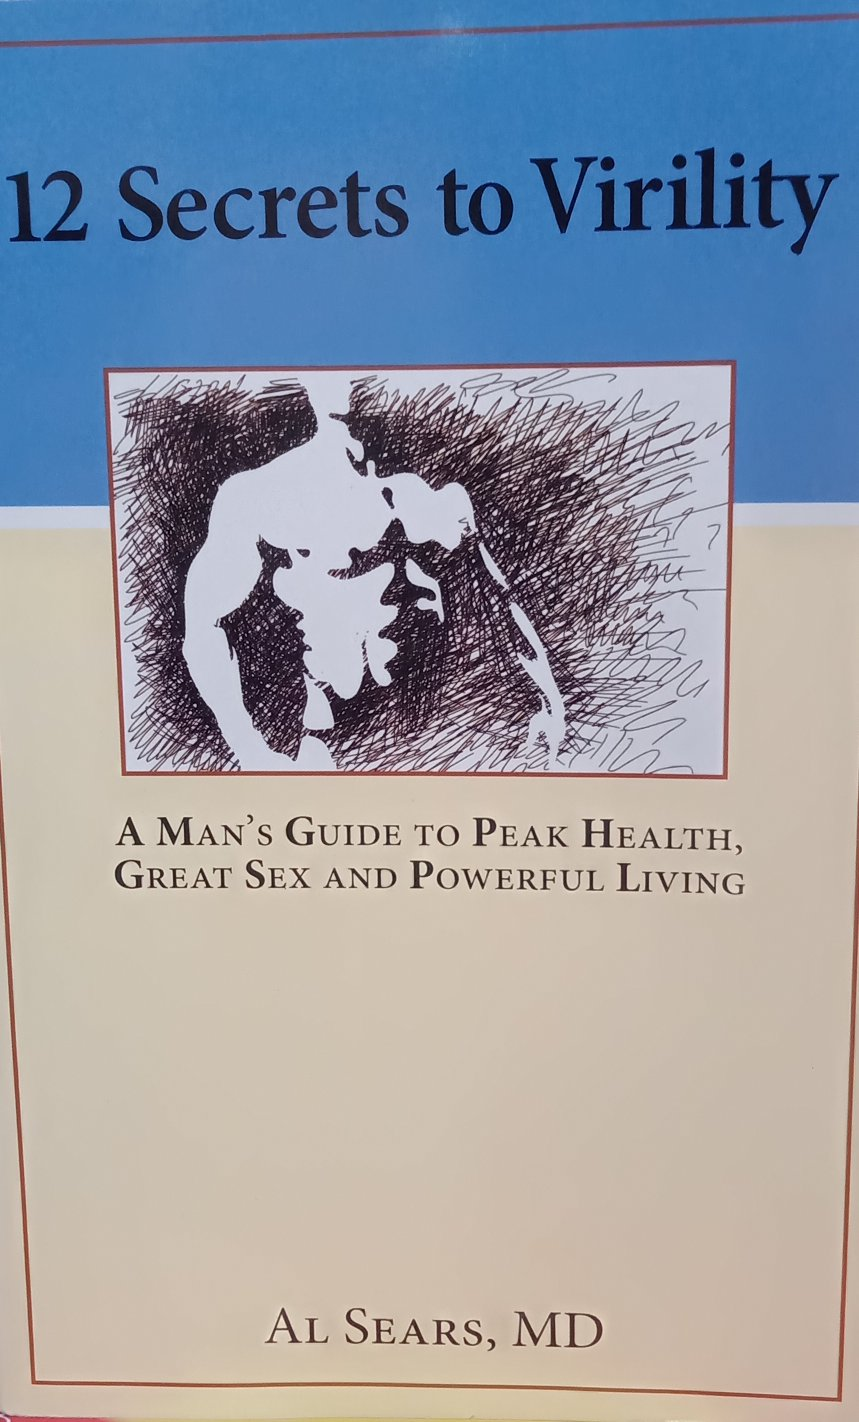 12 secrets to Virility By Al Sears, MD.